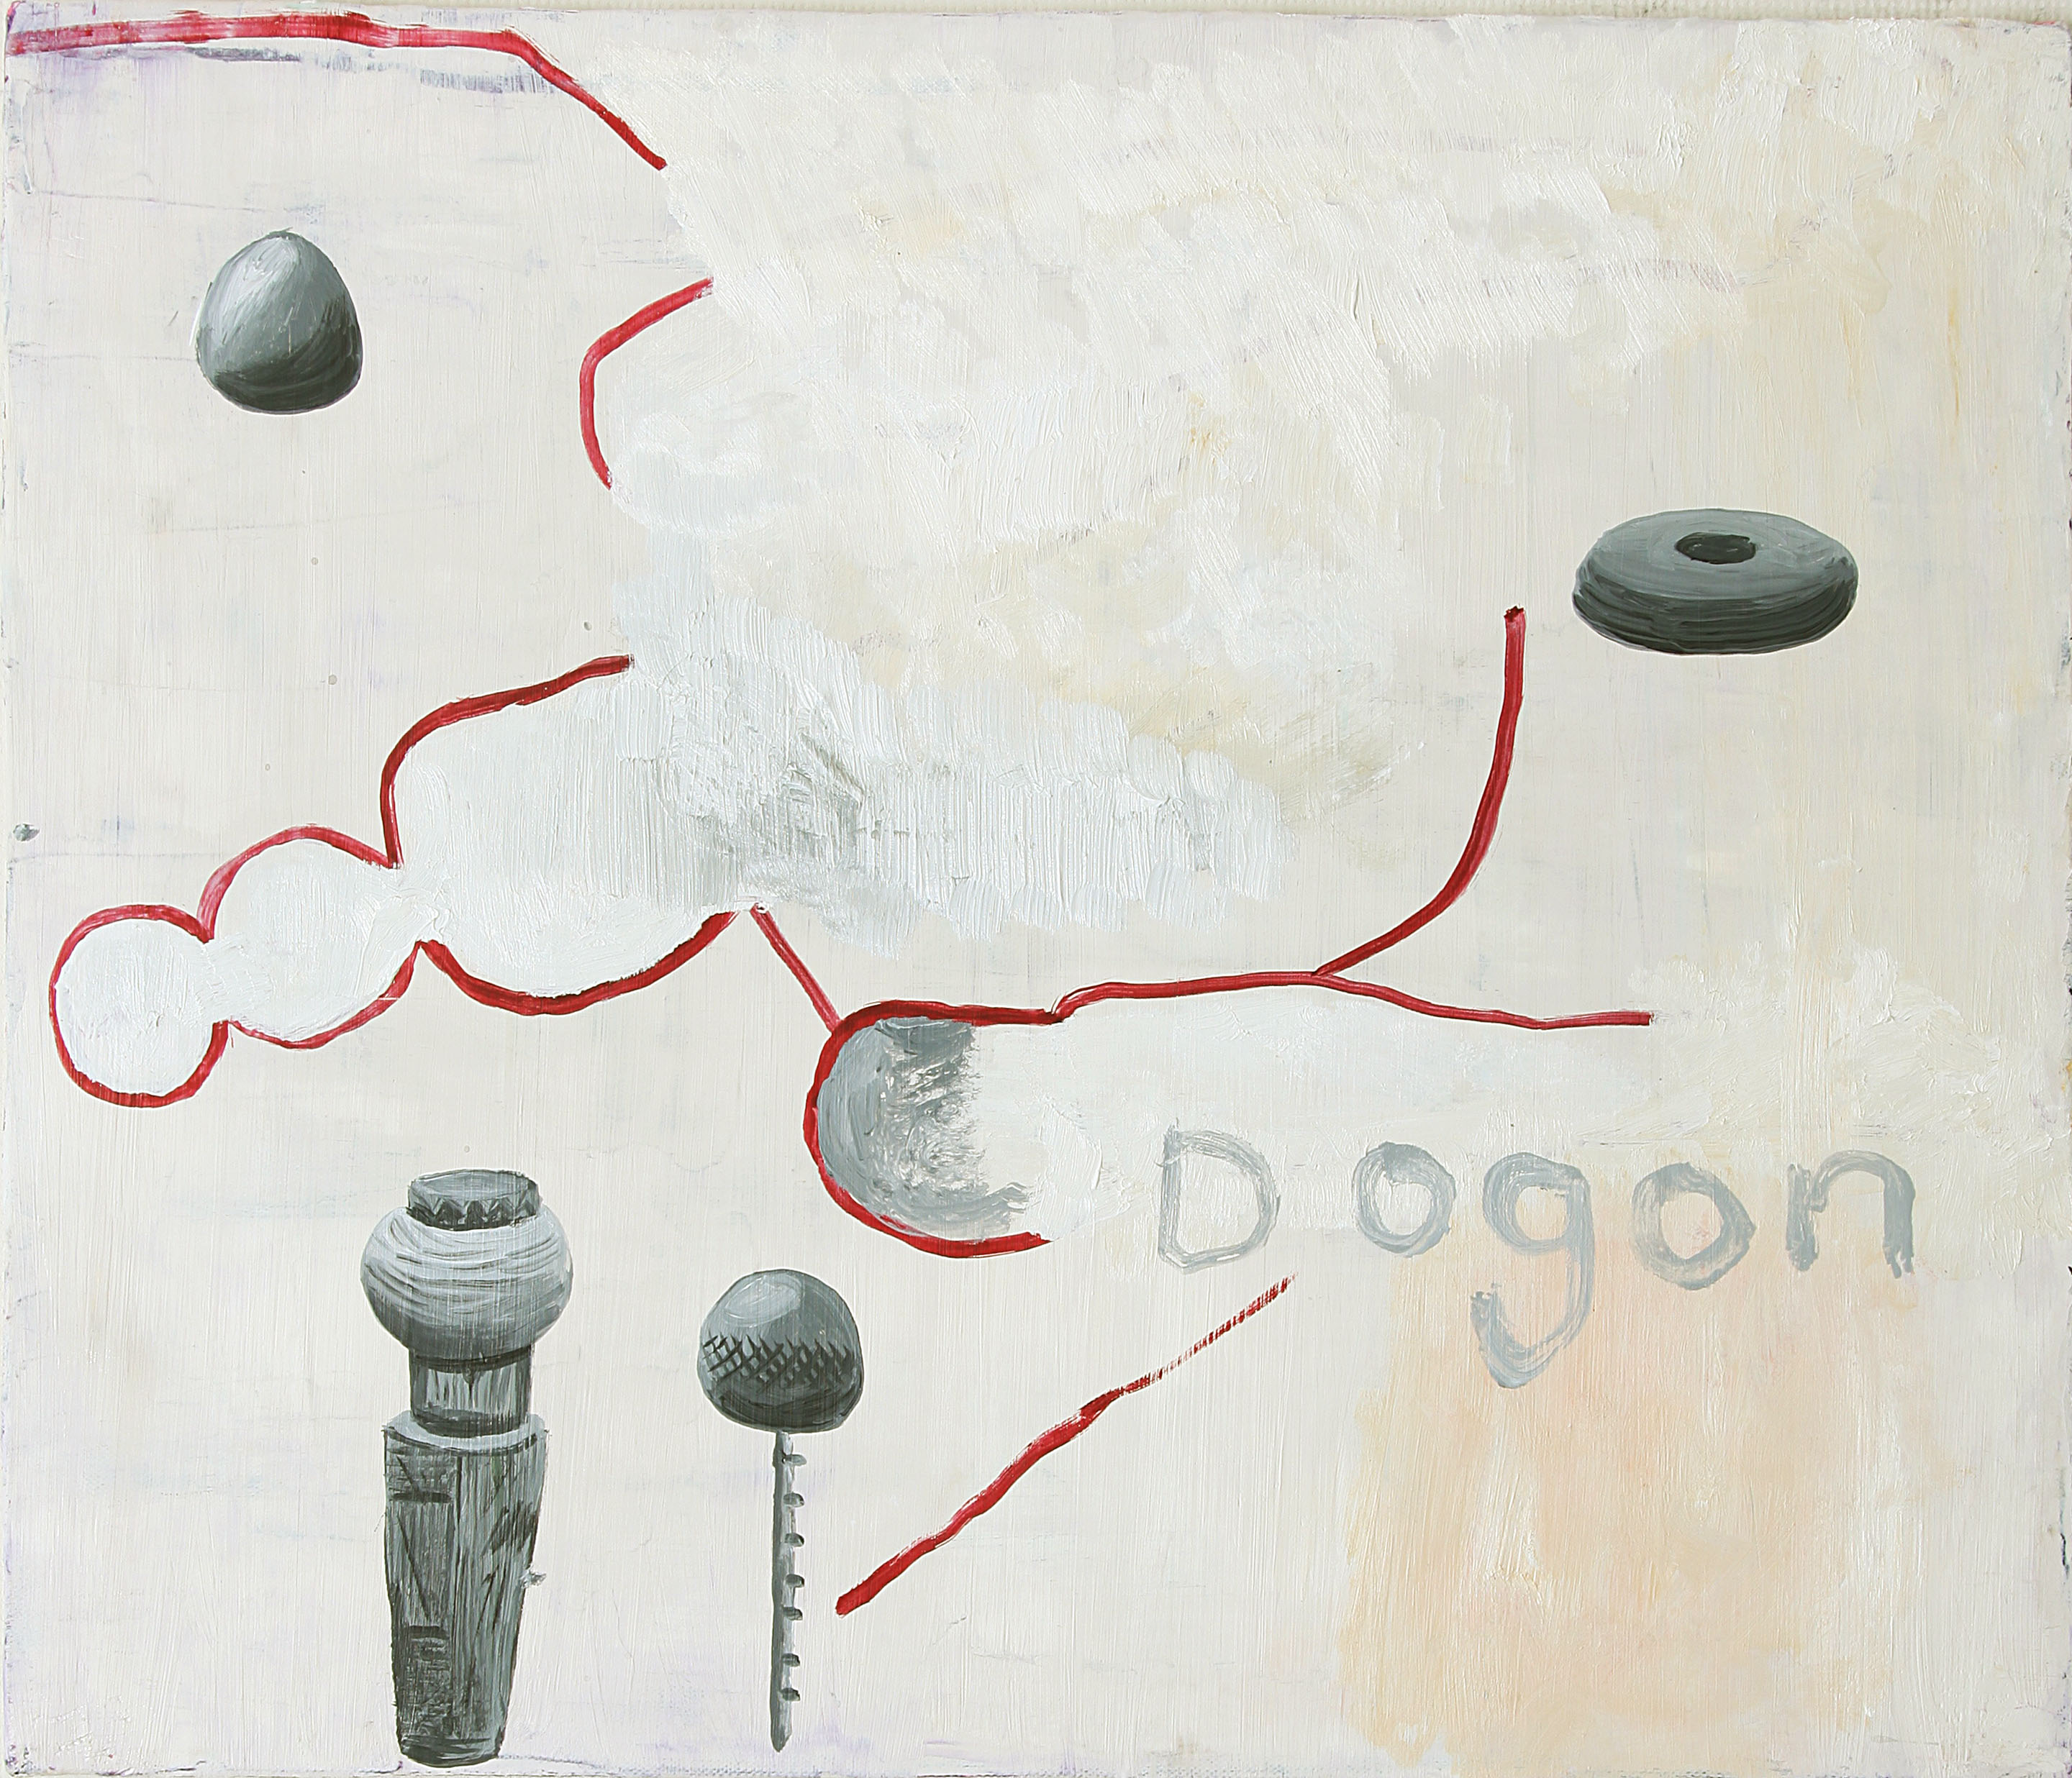 Dogon 2012    oil on canvas